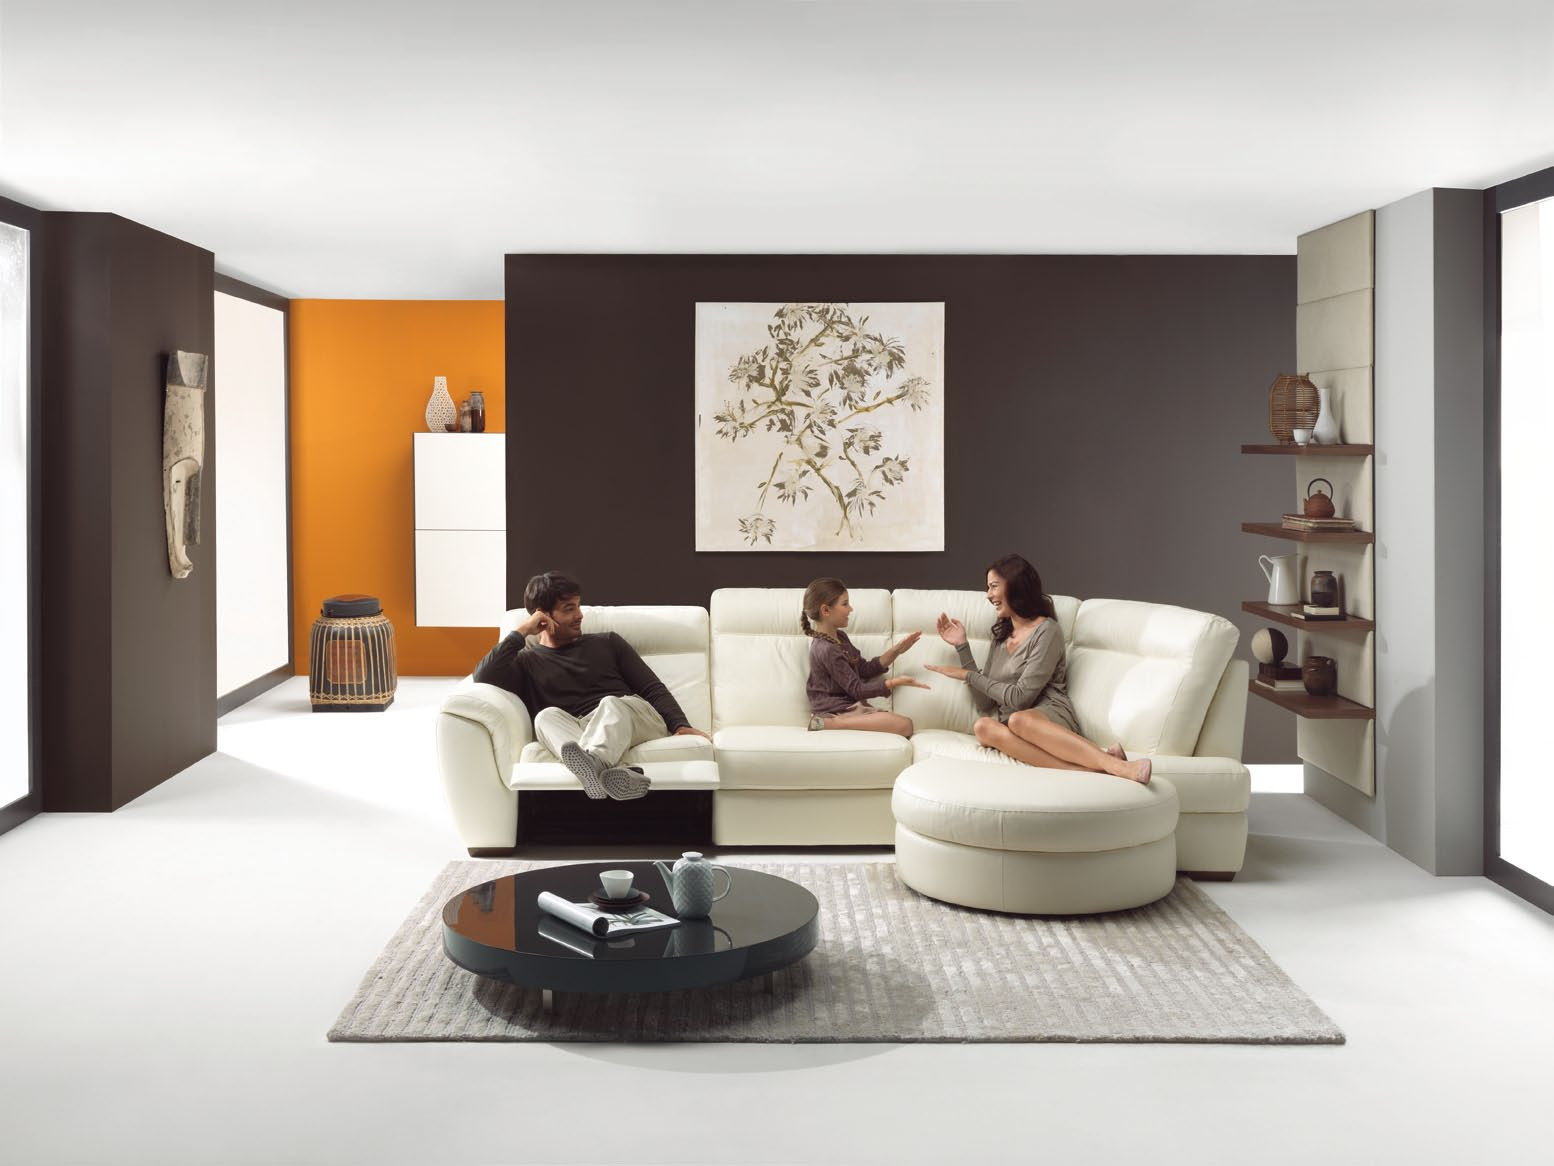 Amazing  » Living Room Design Ideas by NATUZZI » Modern Compact Living Room 1554 x 1166 · 121 kB · jpeg